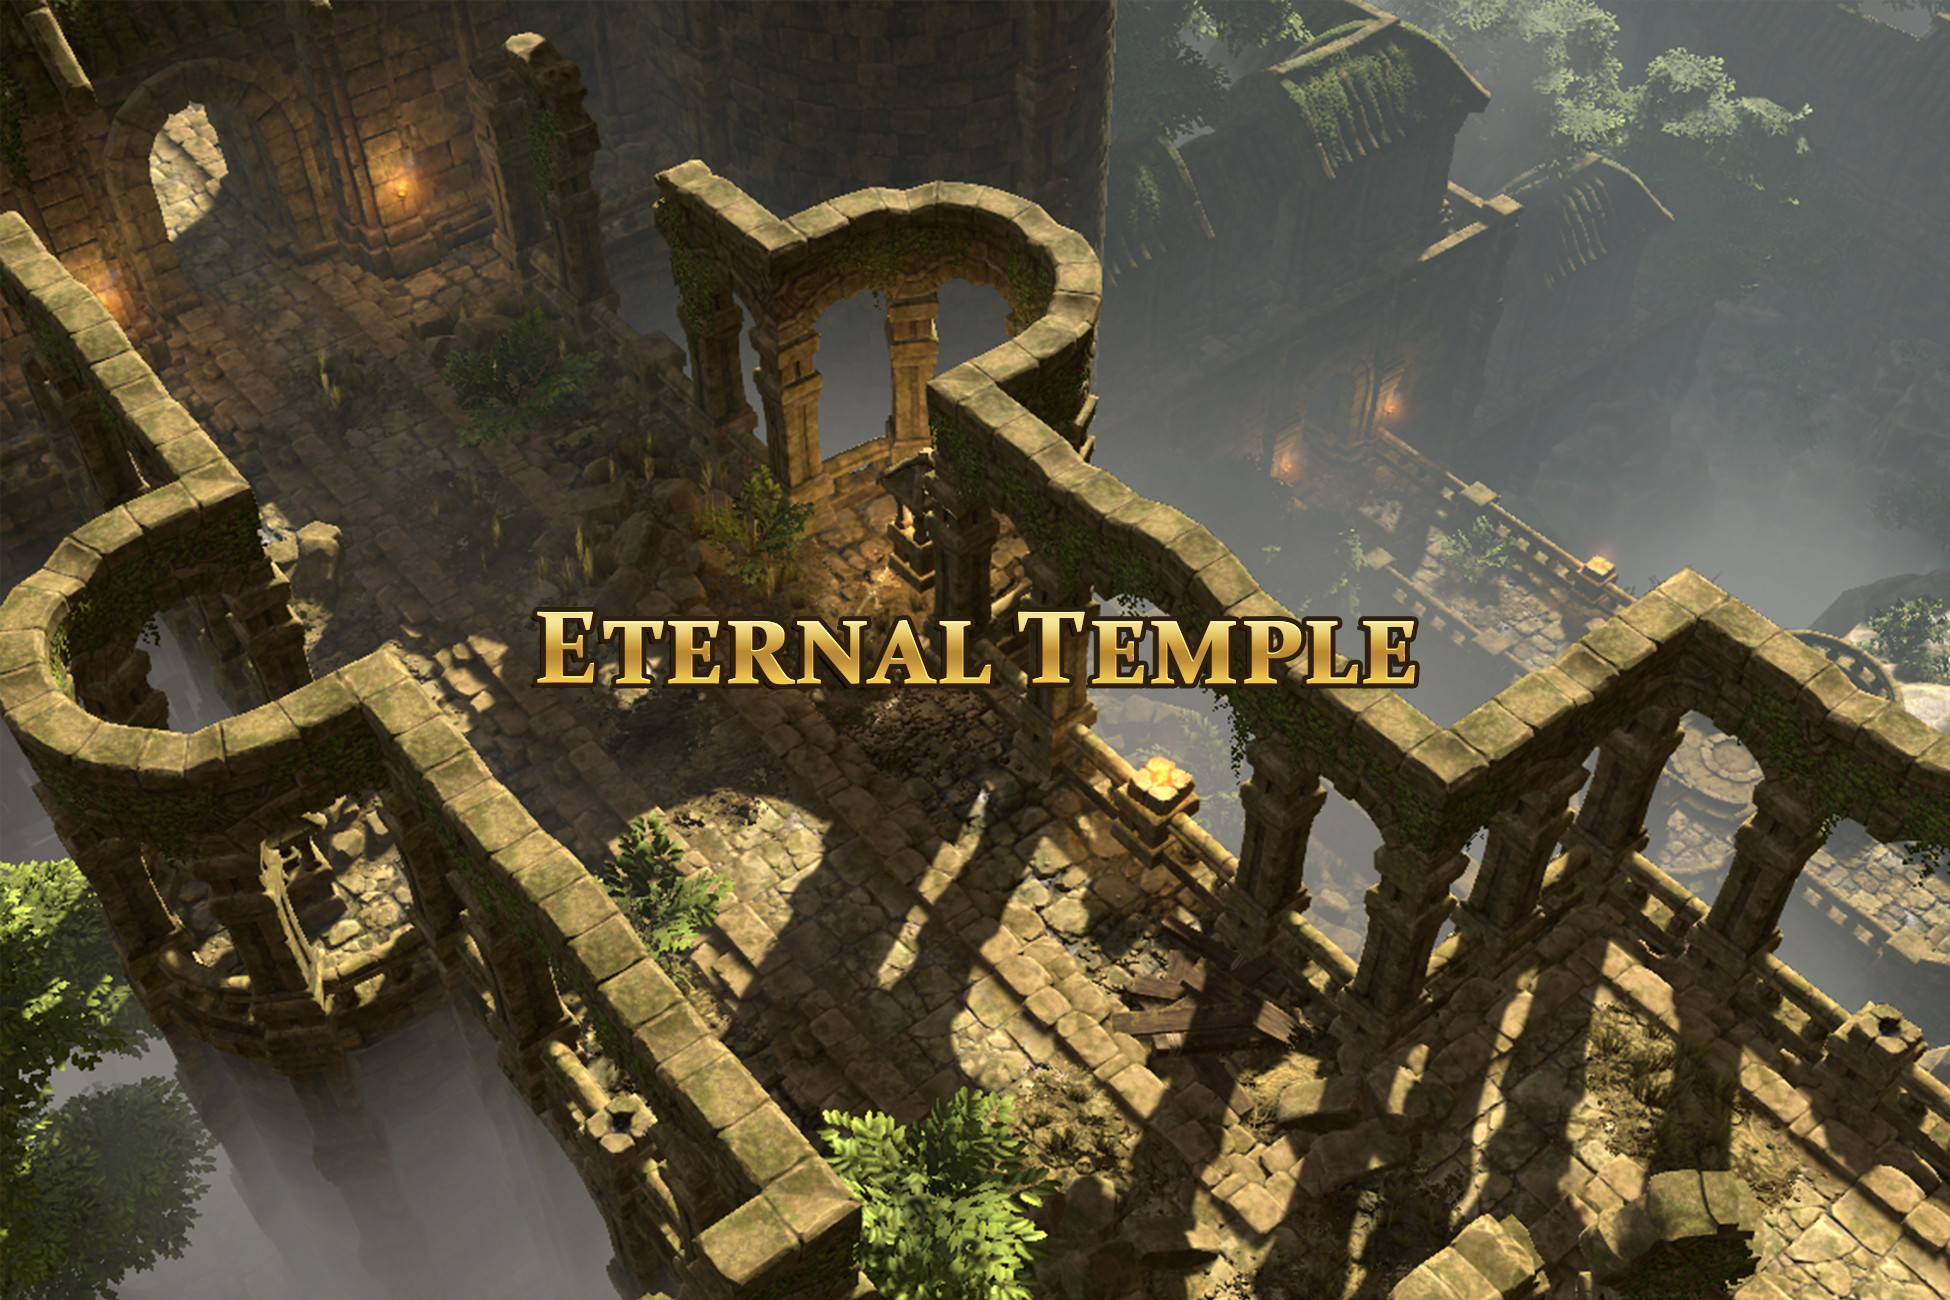 Eternal Temple